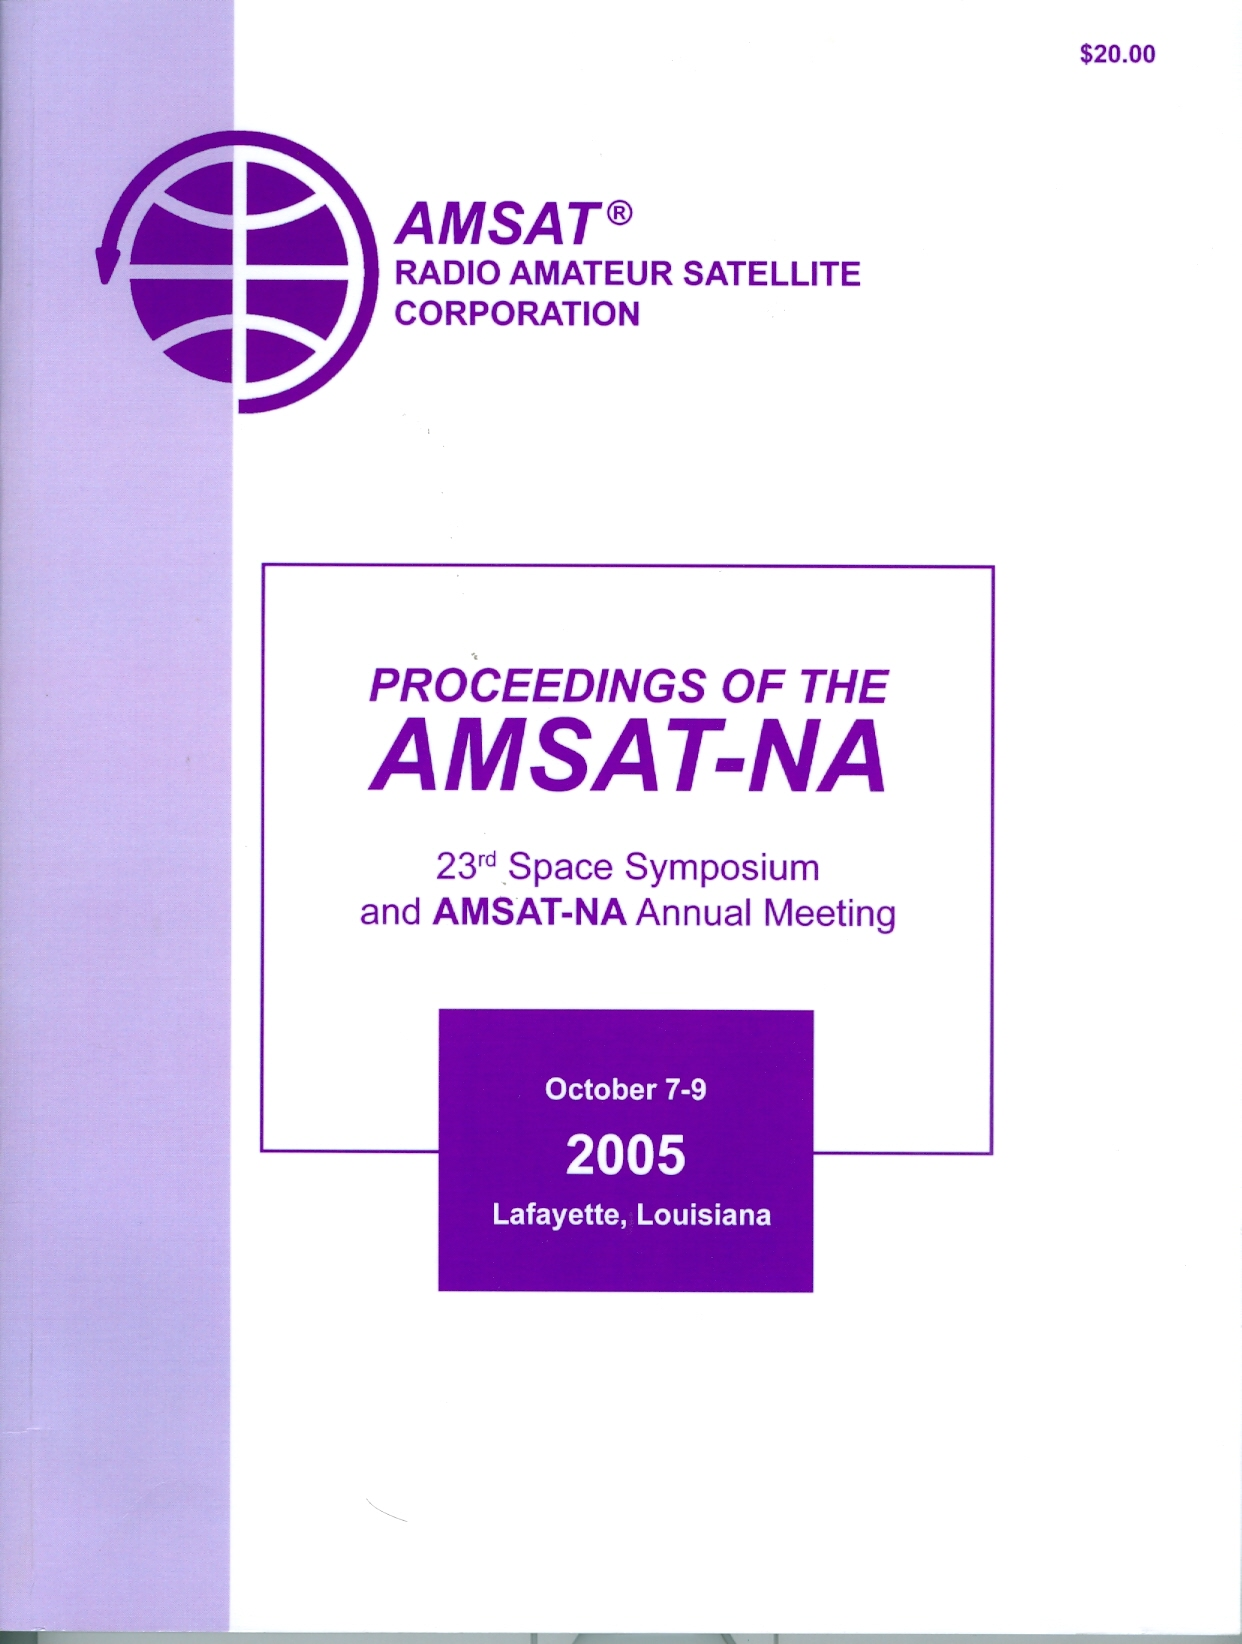 Proceedings of the AMSAT-NA 23rd Space Symposium and AMSAT-NA Annual Meeting